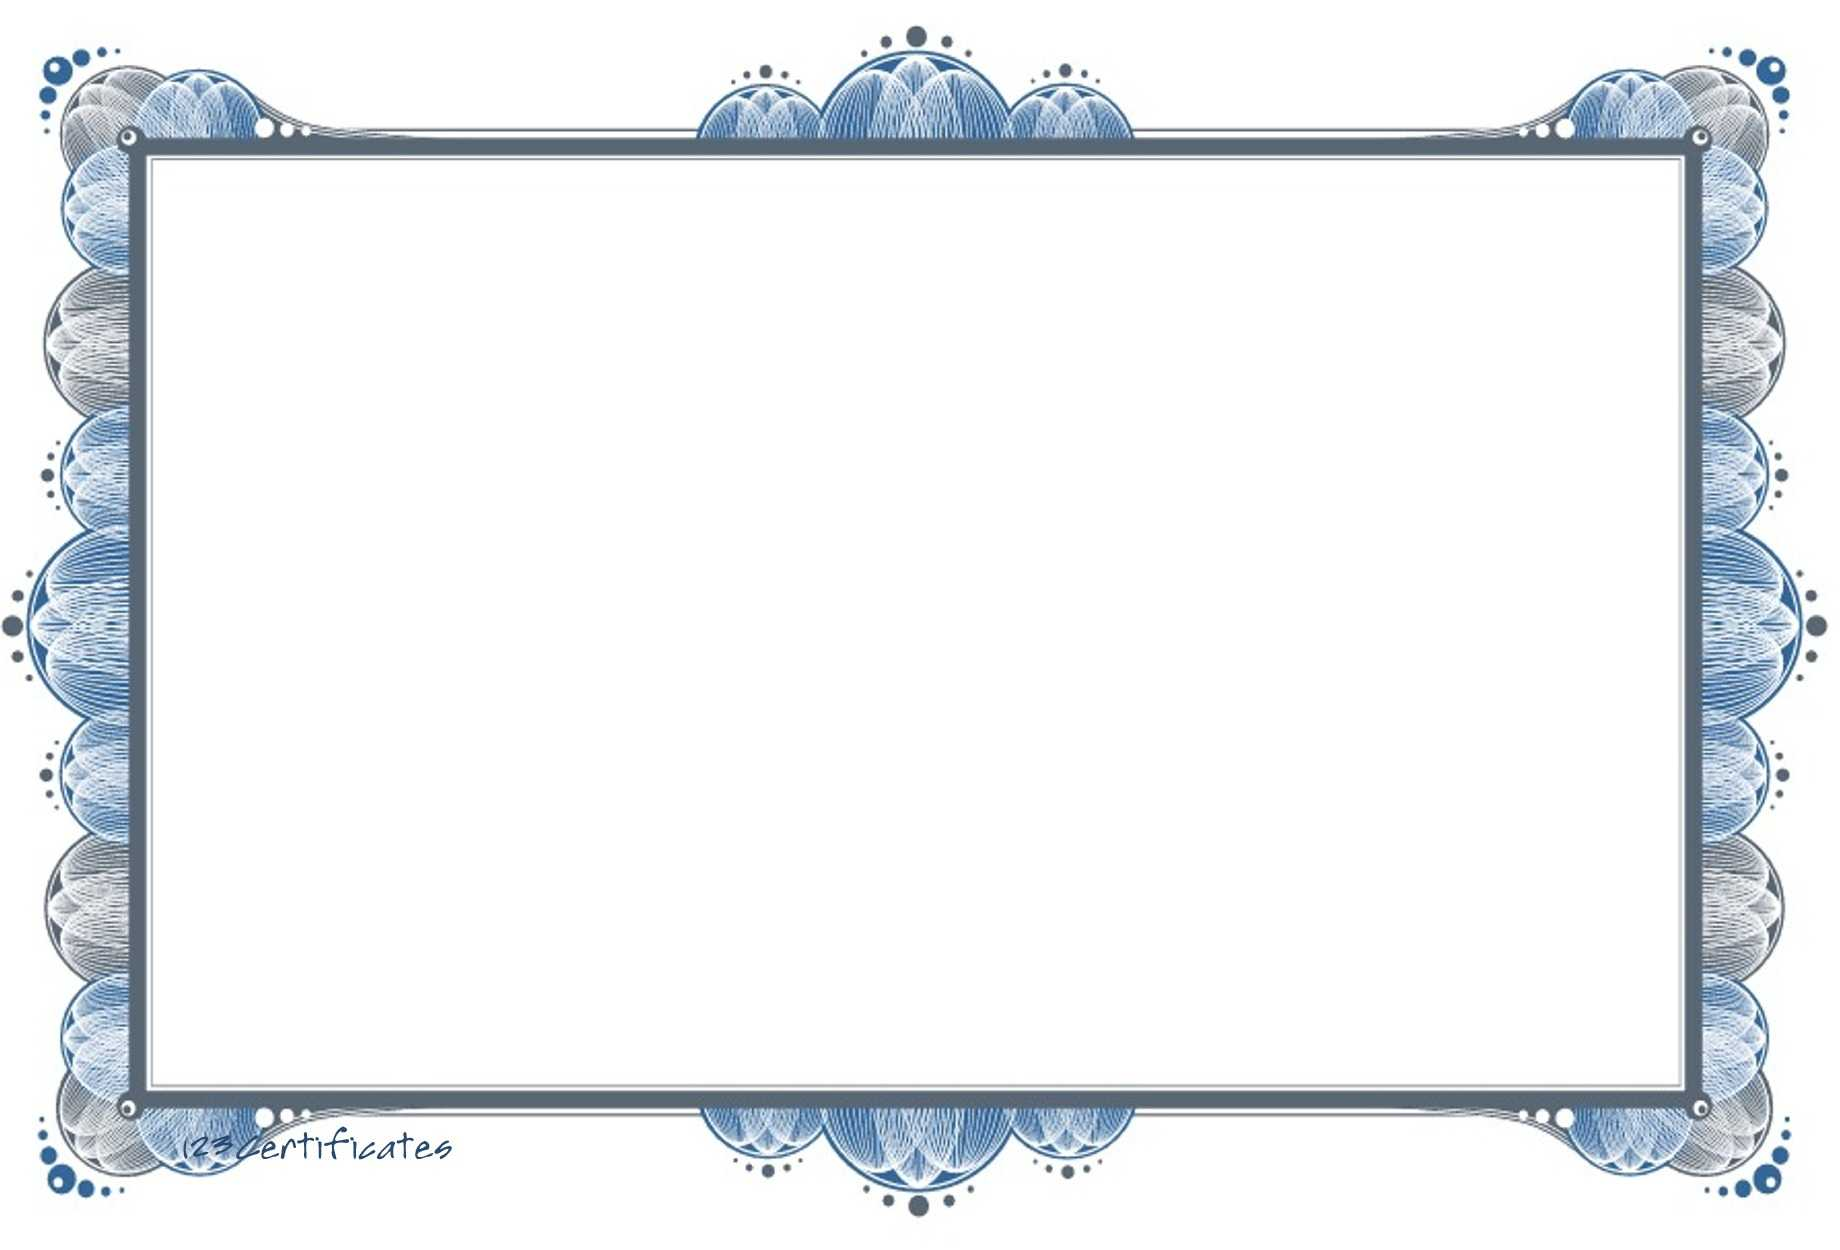 Free Certificate Border, Download Free Clip Art, Free Clip Regarding Free Printable Certificate Border Templates